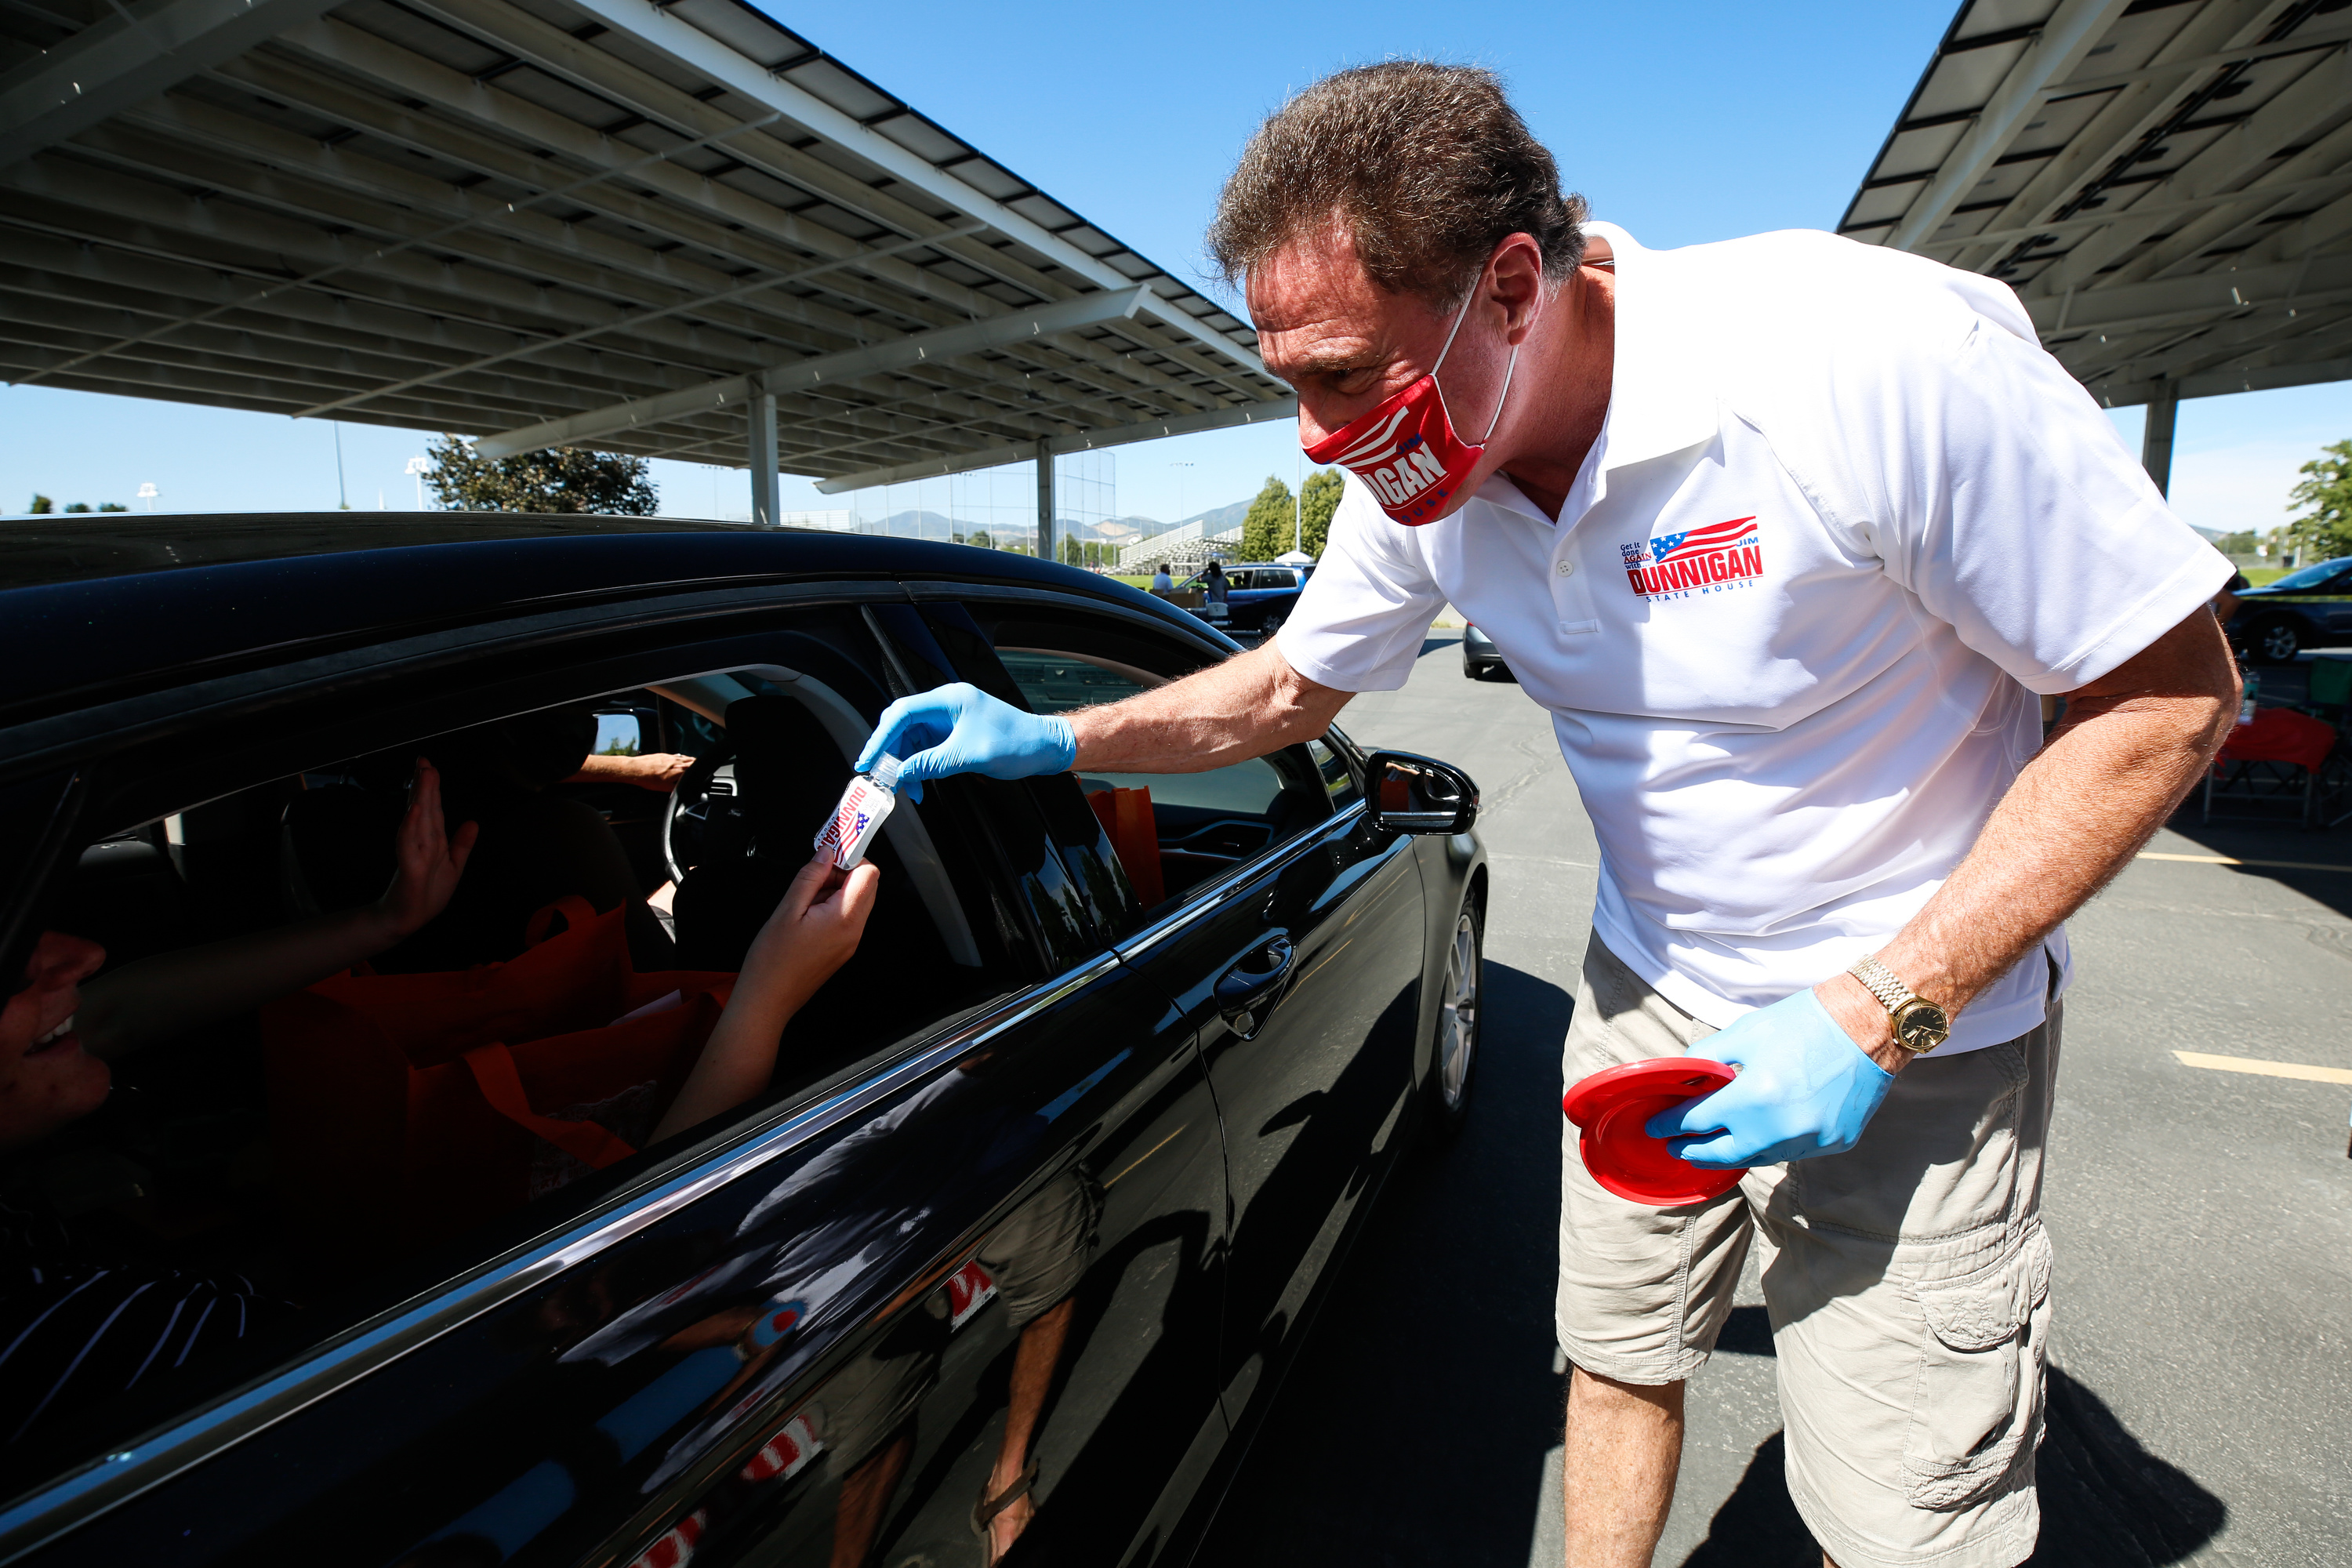 Rep. Jim Dunnigan gives out hand sanitizers to participants during the Hometown Day drive through event at Utah Olympic Oval Parking Lot in Kearns on Saturday, Aug. 8, 2020.